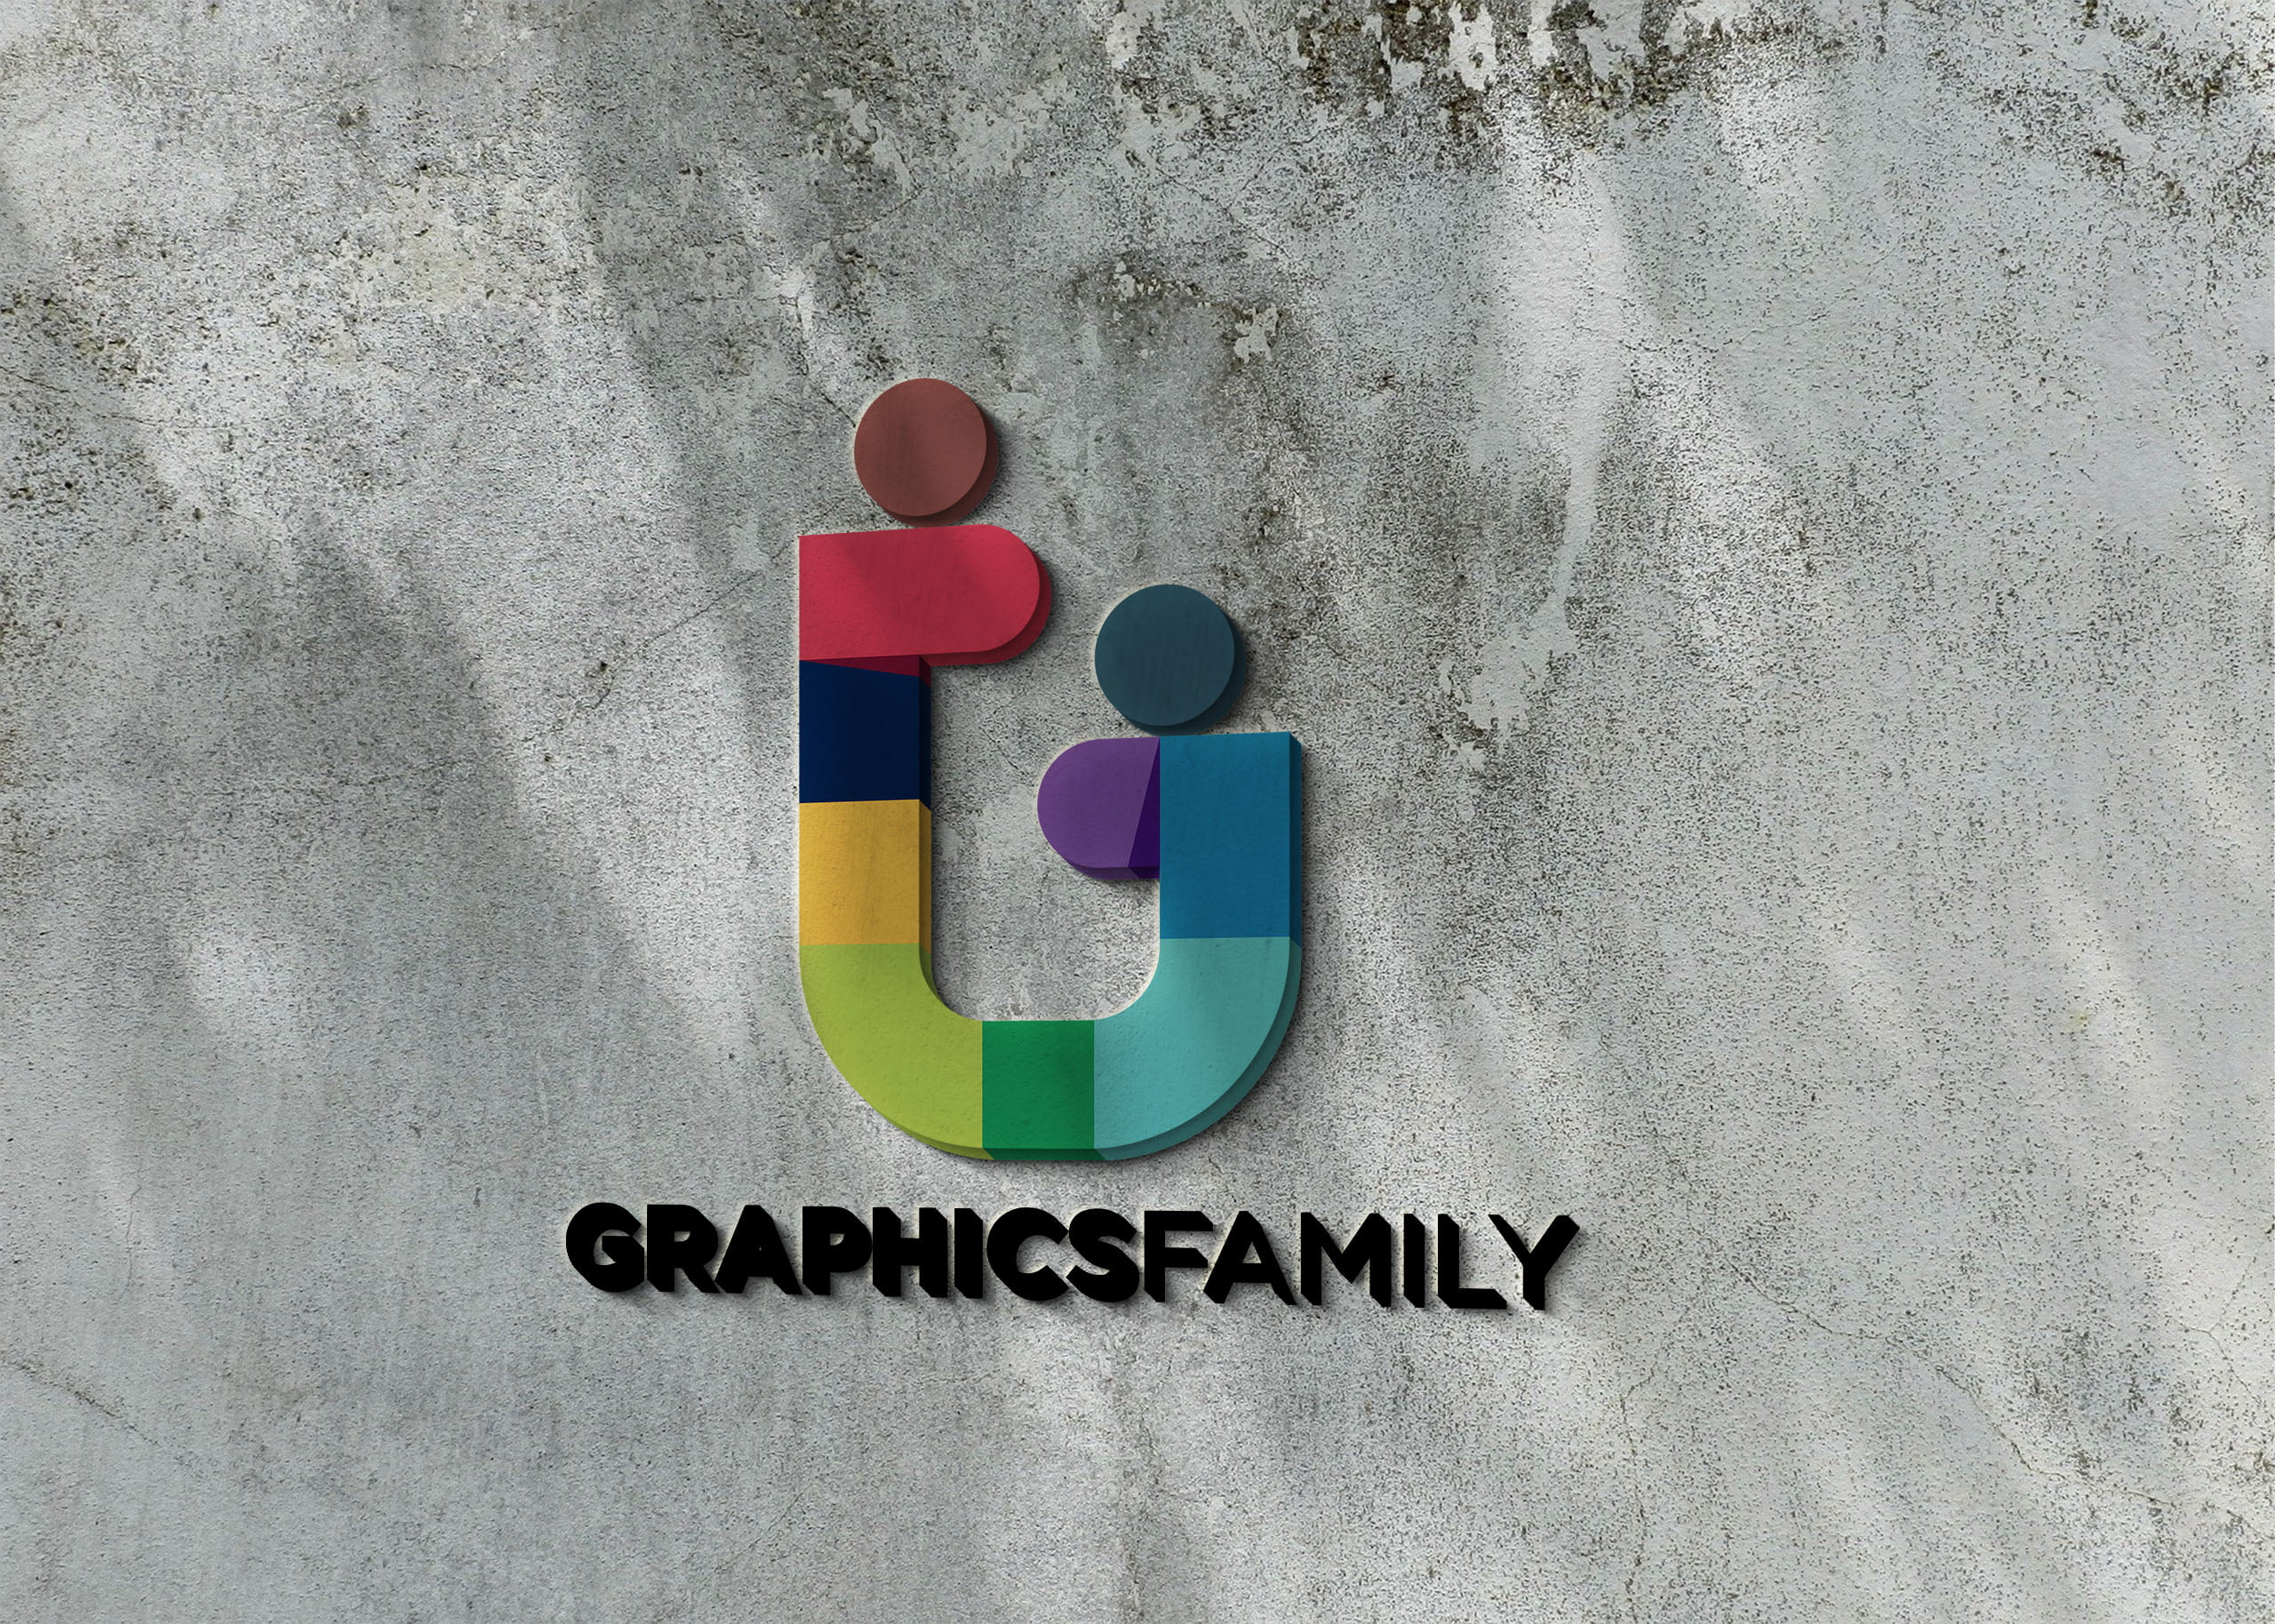 Graphicsfamily logo on 3d wall